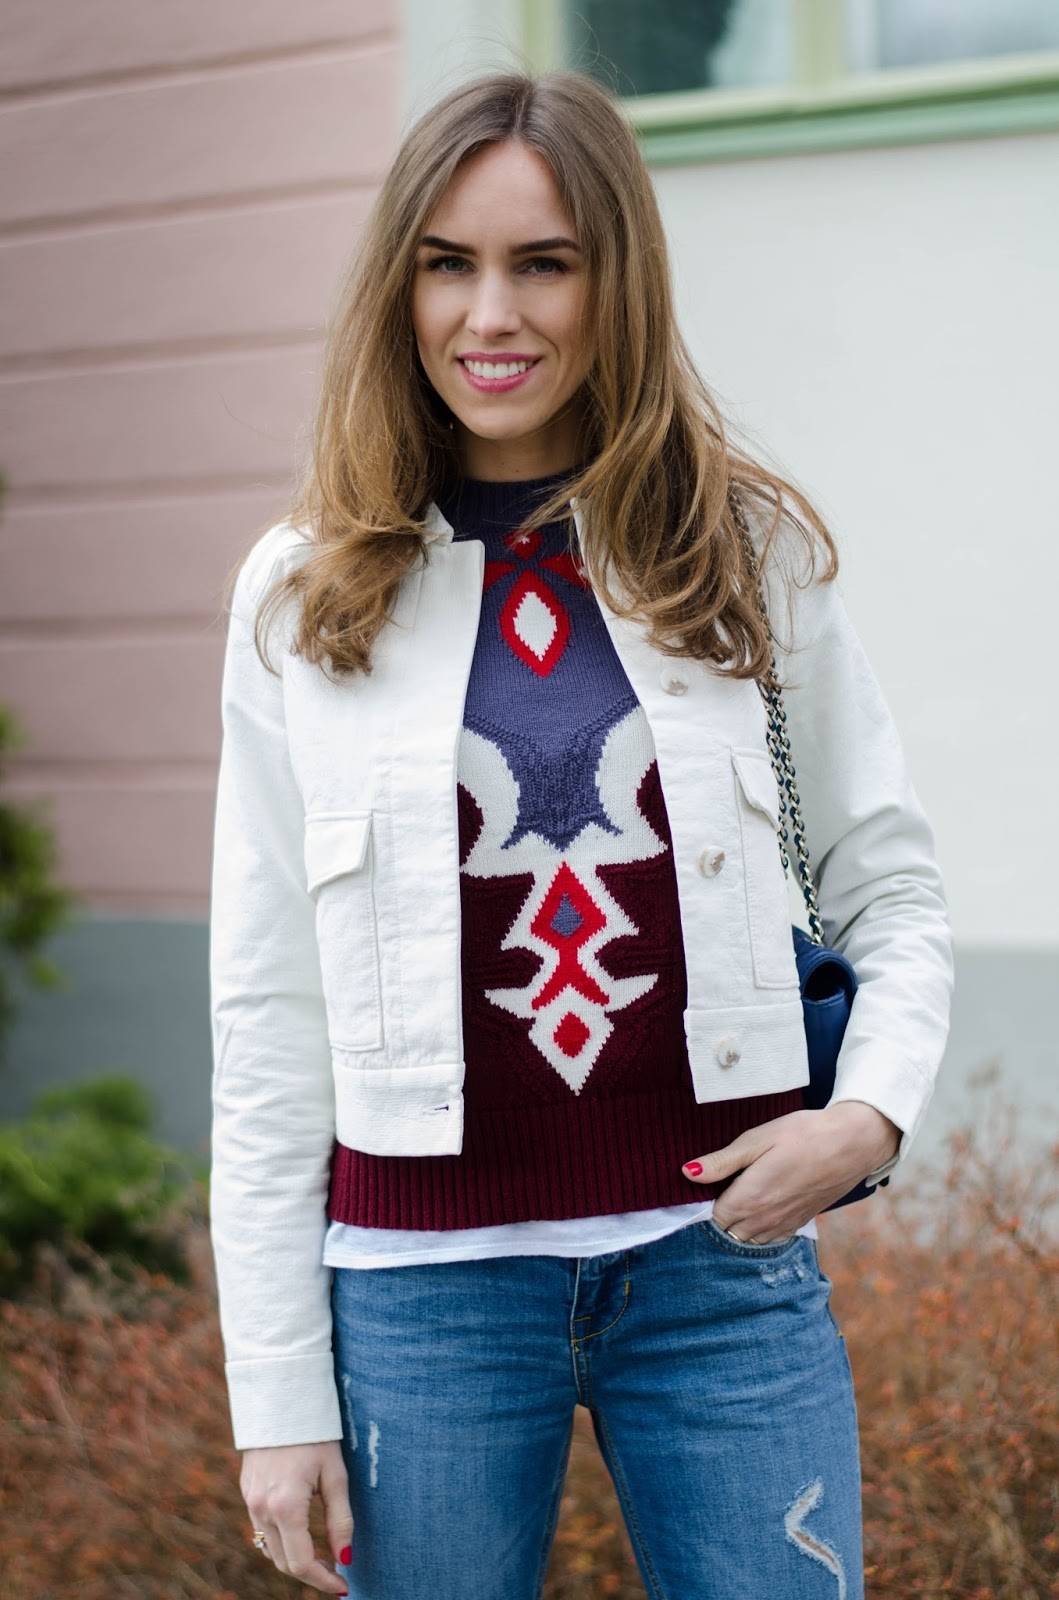 kristjaana mere white denim jacket patterned sweater